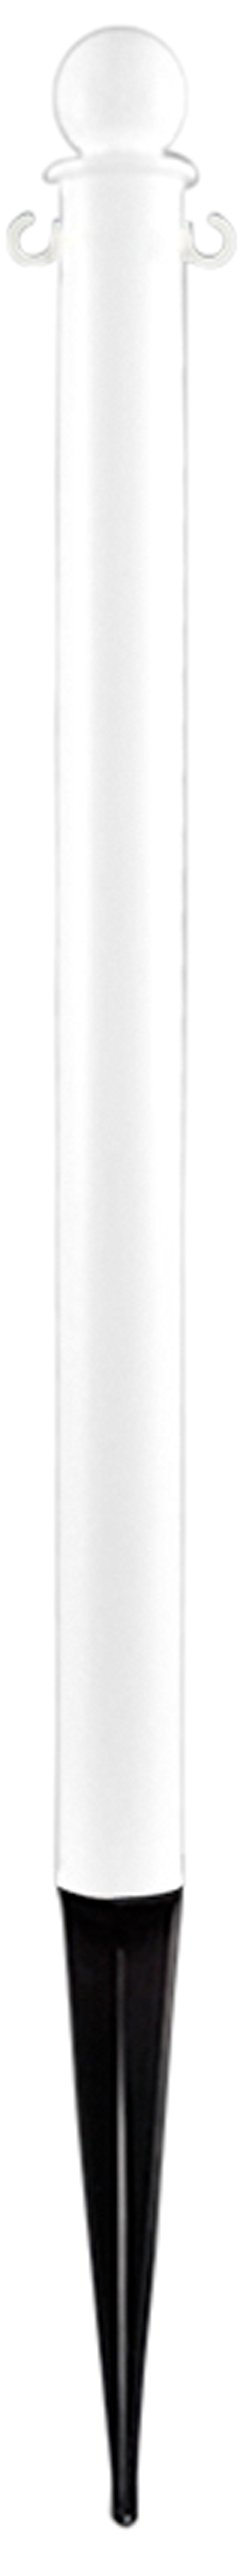 Mr. Chain 95401-6 Deluxe Ground Pole, 2-1/2'' Diameter x 35'' Height, White (Pack of 6)